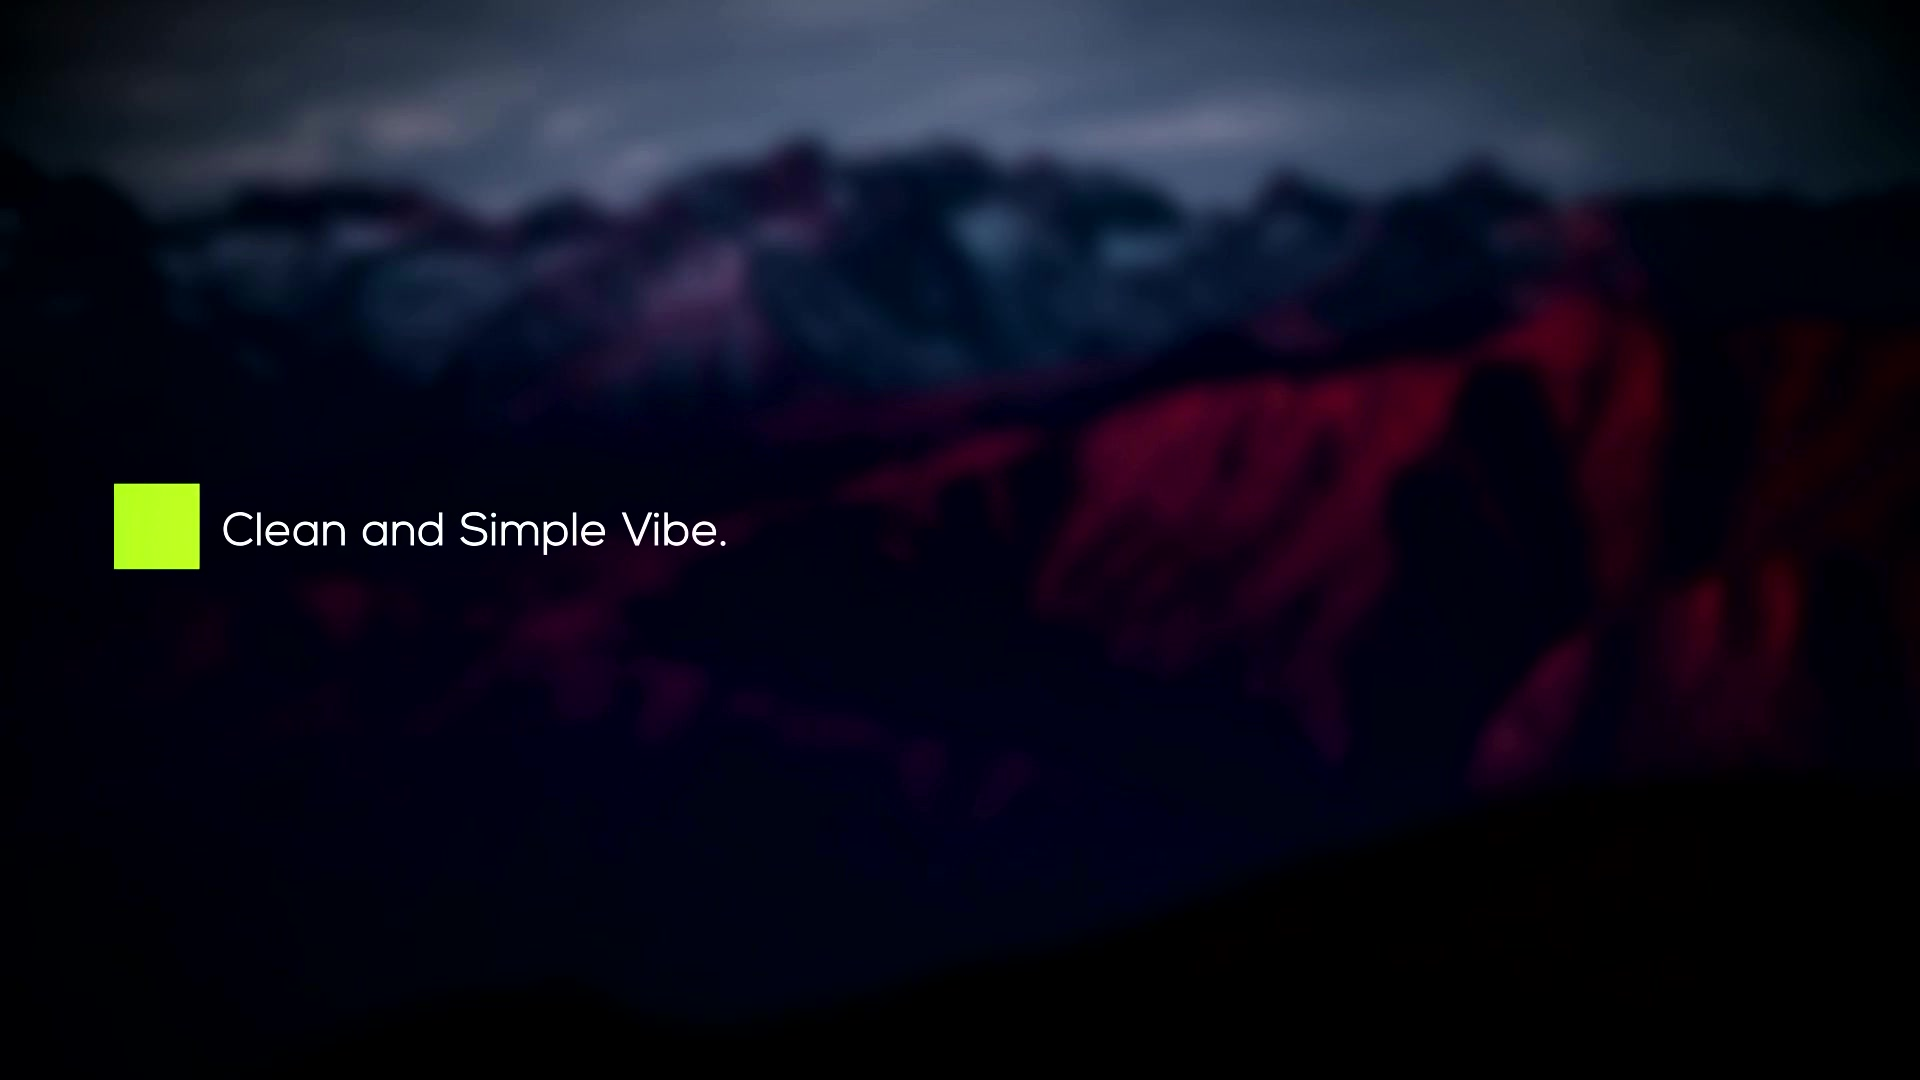 Modern Intro Titles Pack lll for Premiere Pro - Download Videohive 22550389